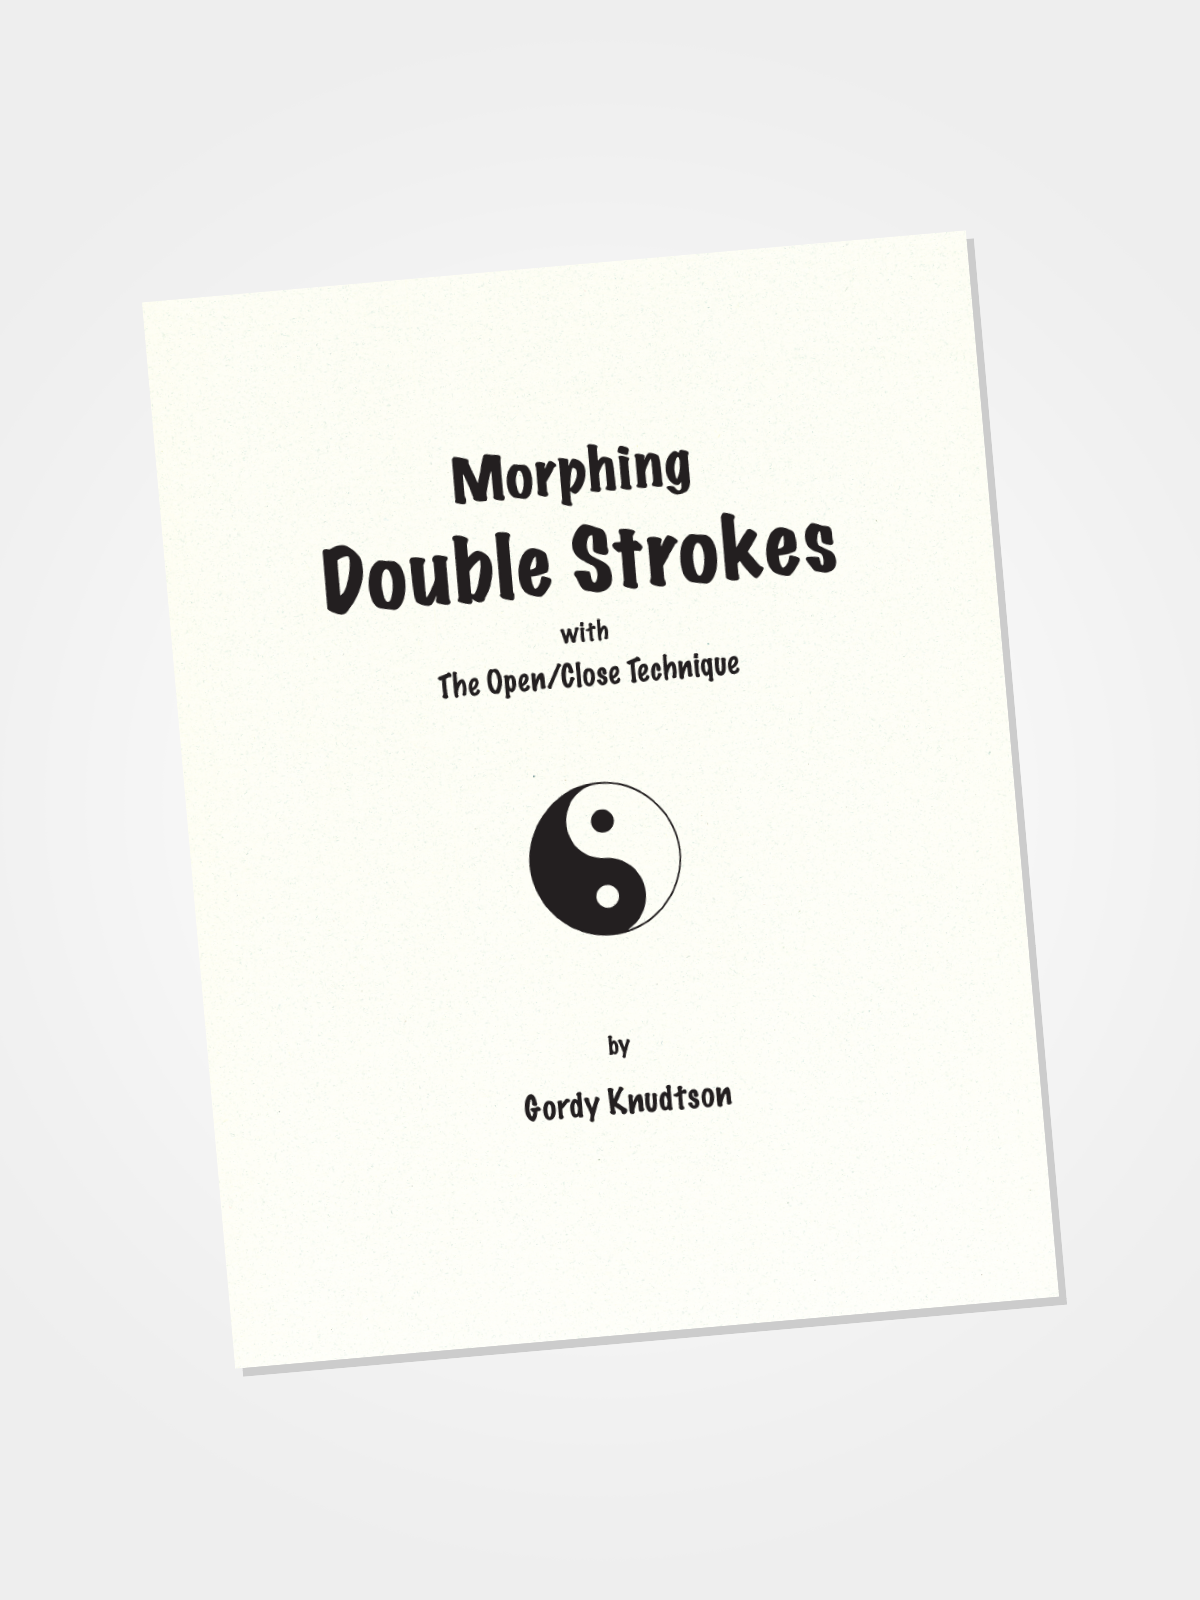 Morphing Double Strokes